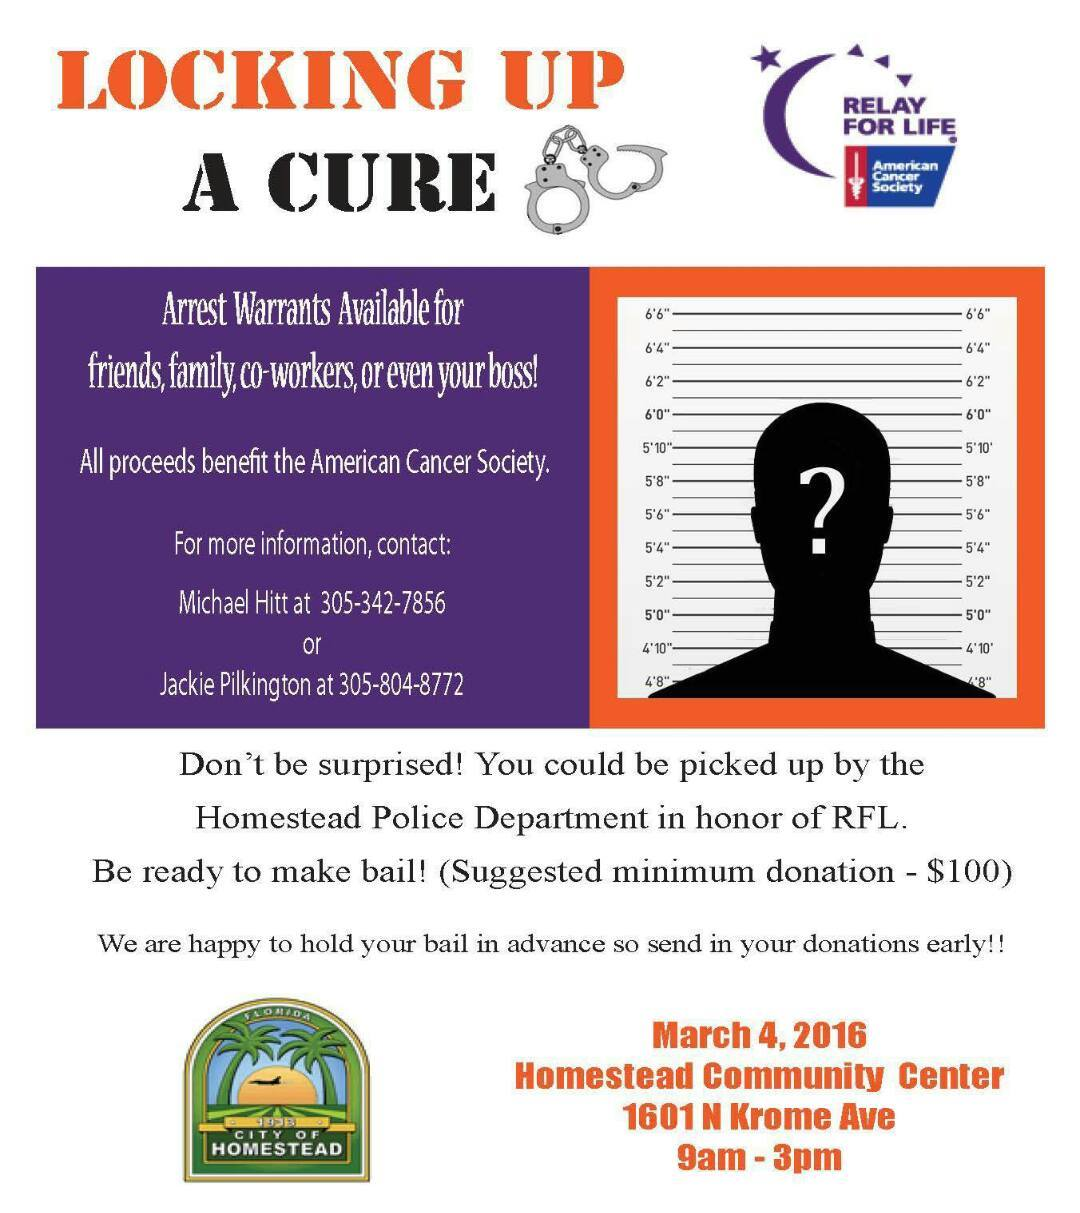 Relay for Life Lock Up A Cure